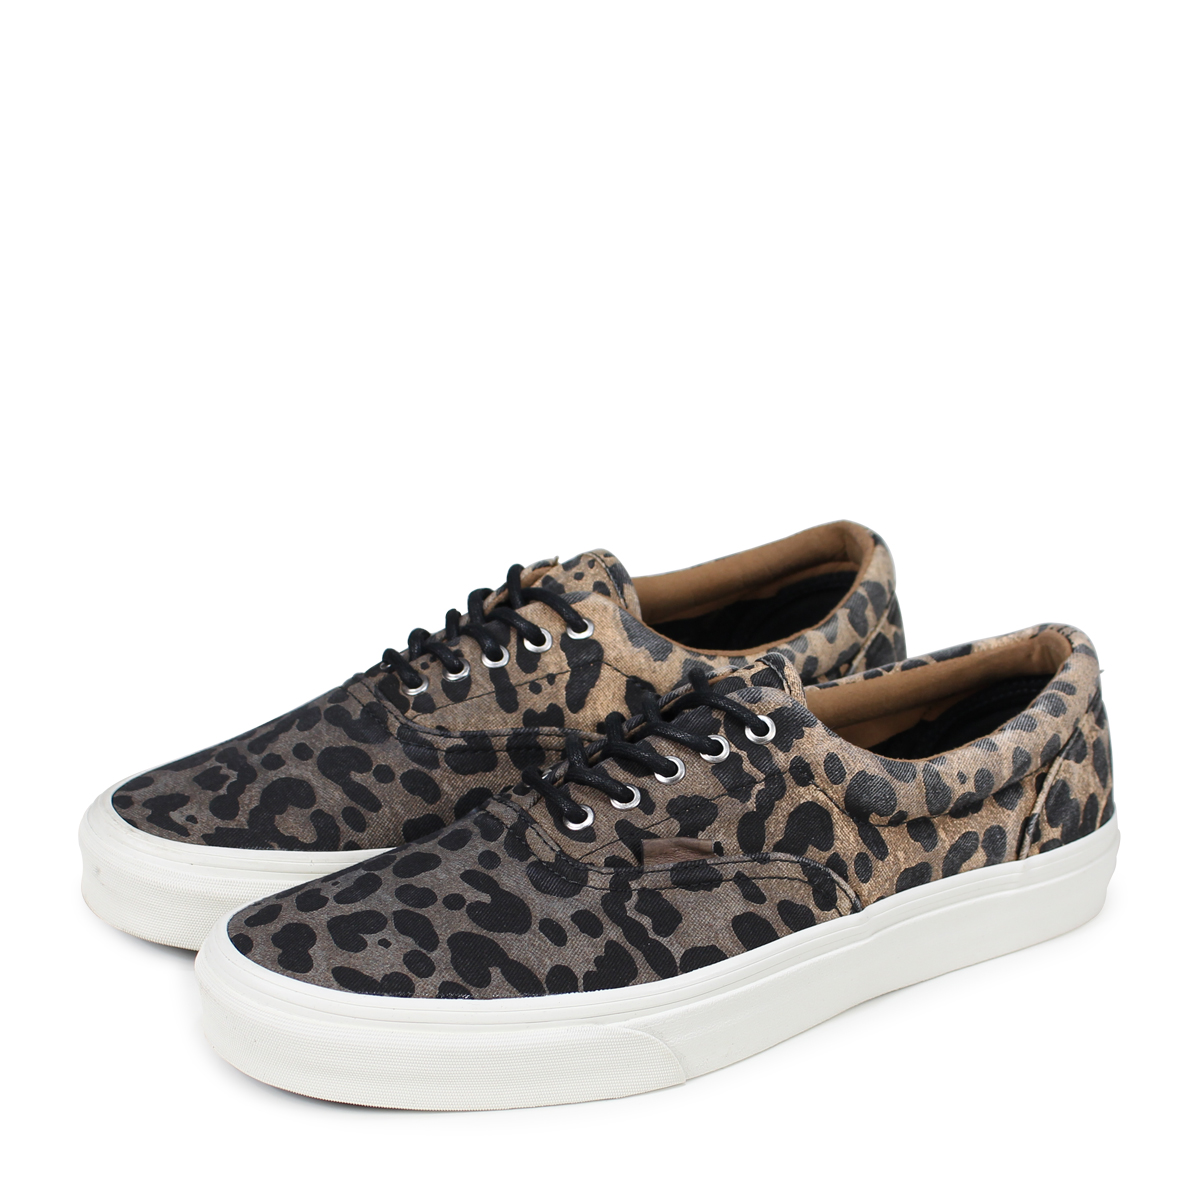 a0aa6bbd1483  SOLD OUT  vans VANS ERA CA sneakers Ella canvas men s Leopard California  line VN-0IM9BJ7  regular